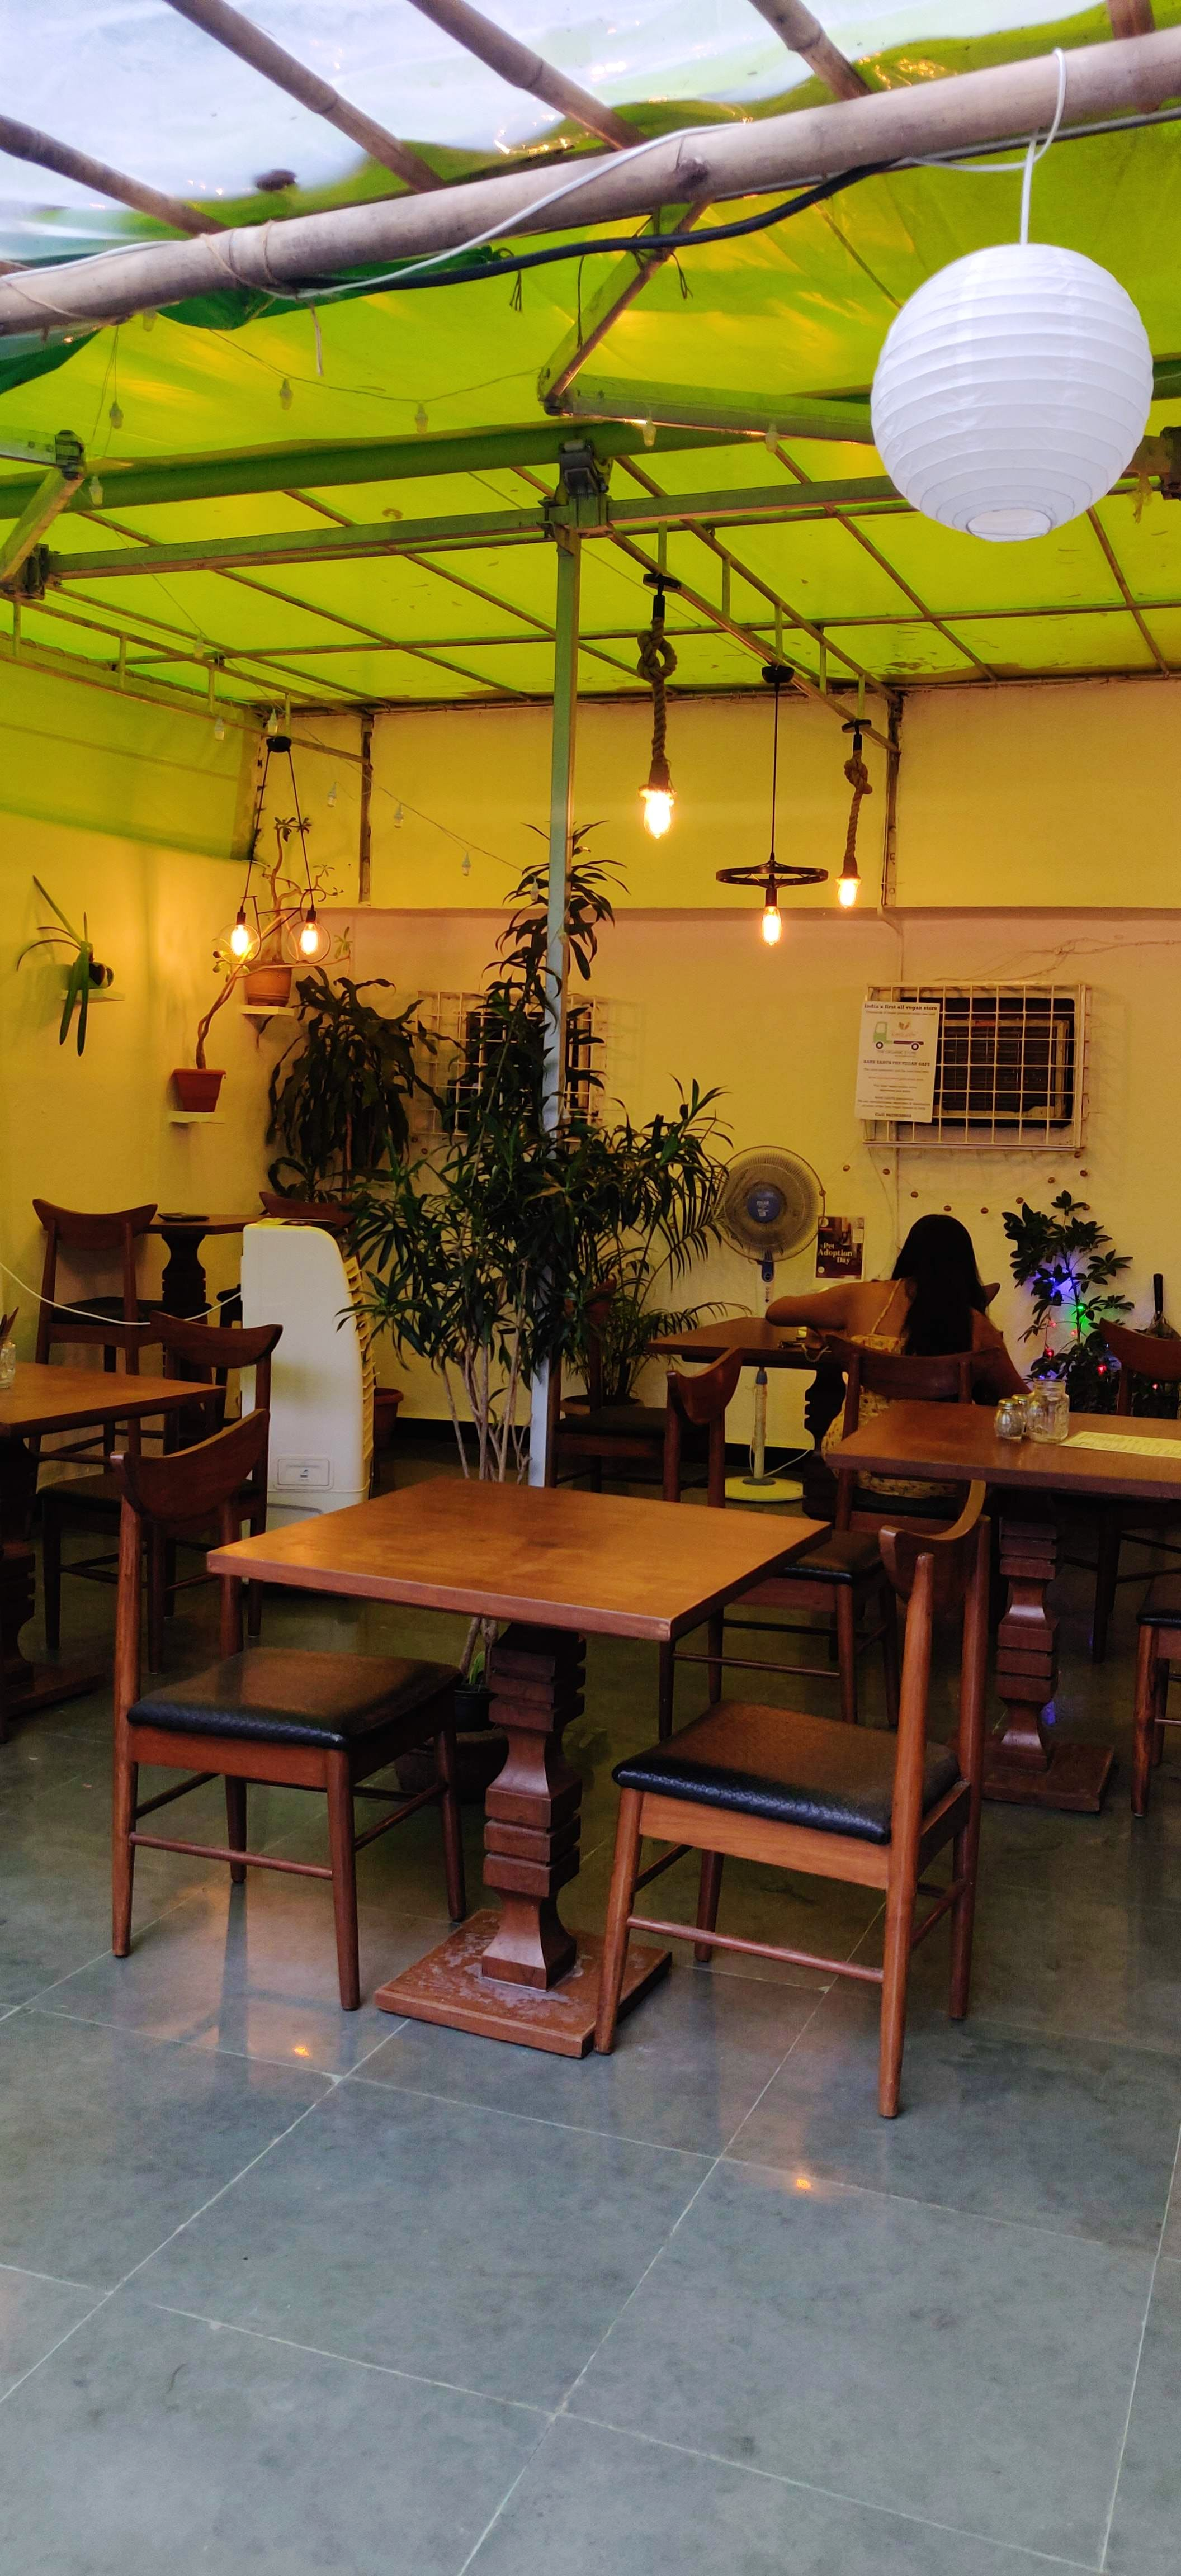 Table,Furniture,Room,Building,Outdoor table,Kitchen & dining room table,Interior design,Café,Houseplant